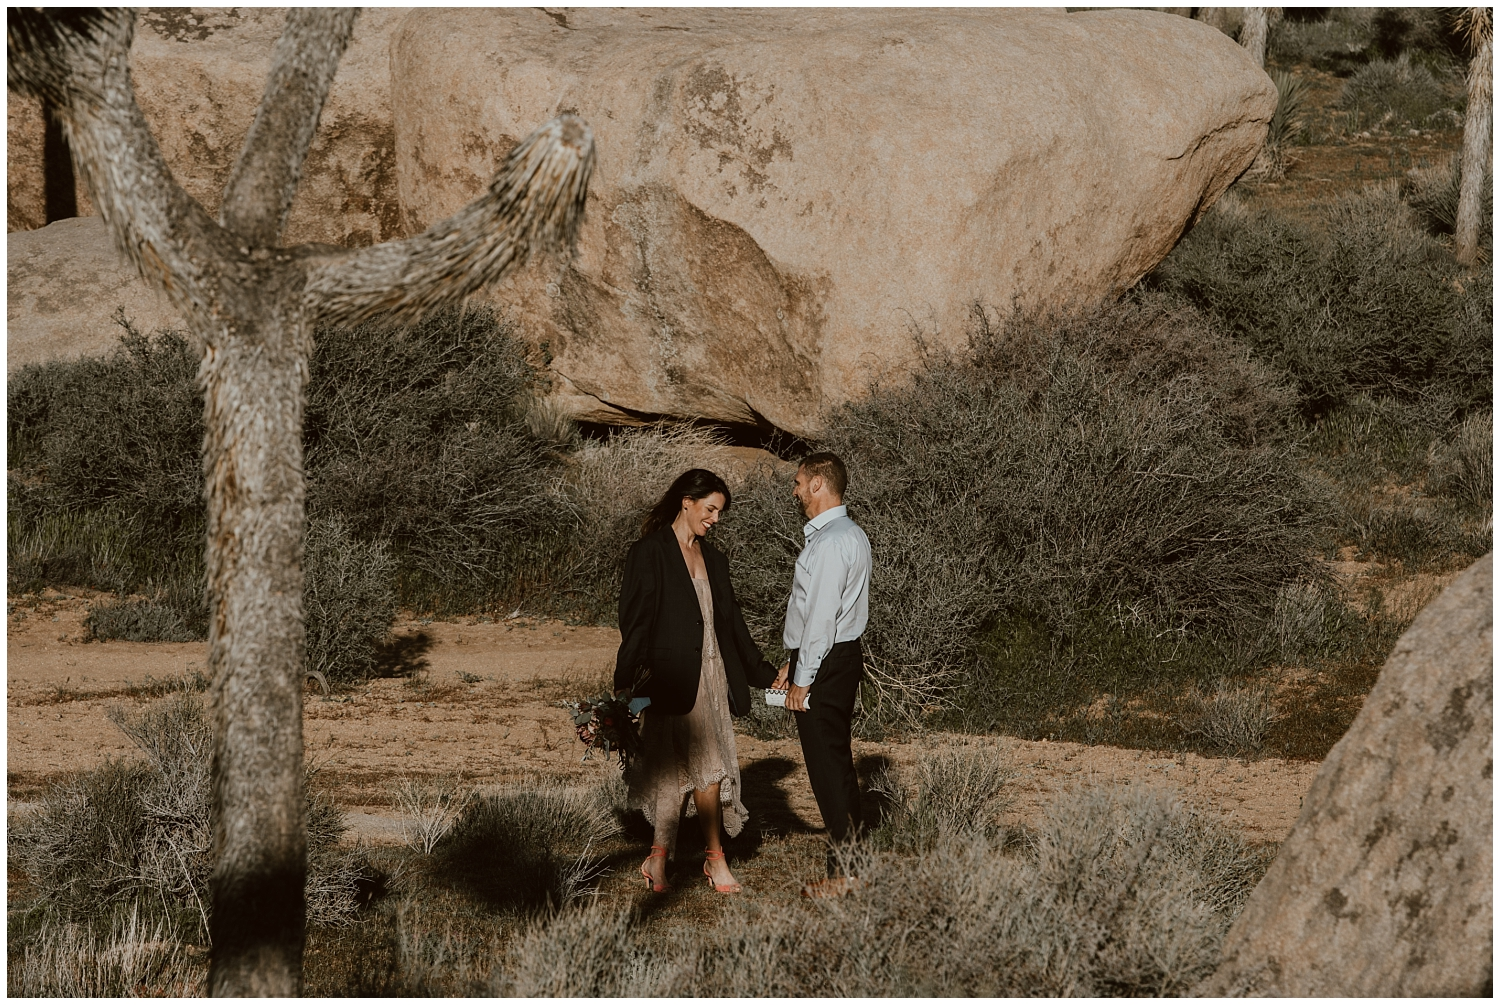 Cap-Rock-Joshua-Tree-Elopement-0025.jpg